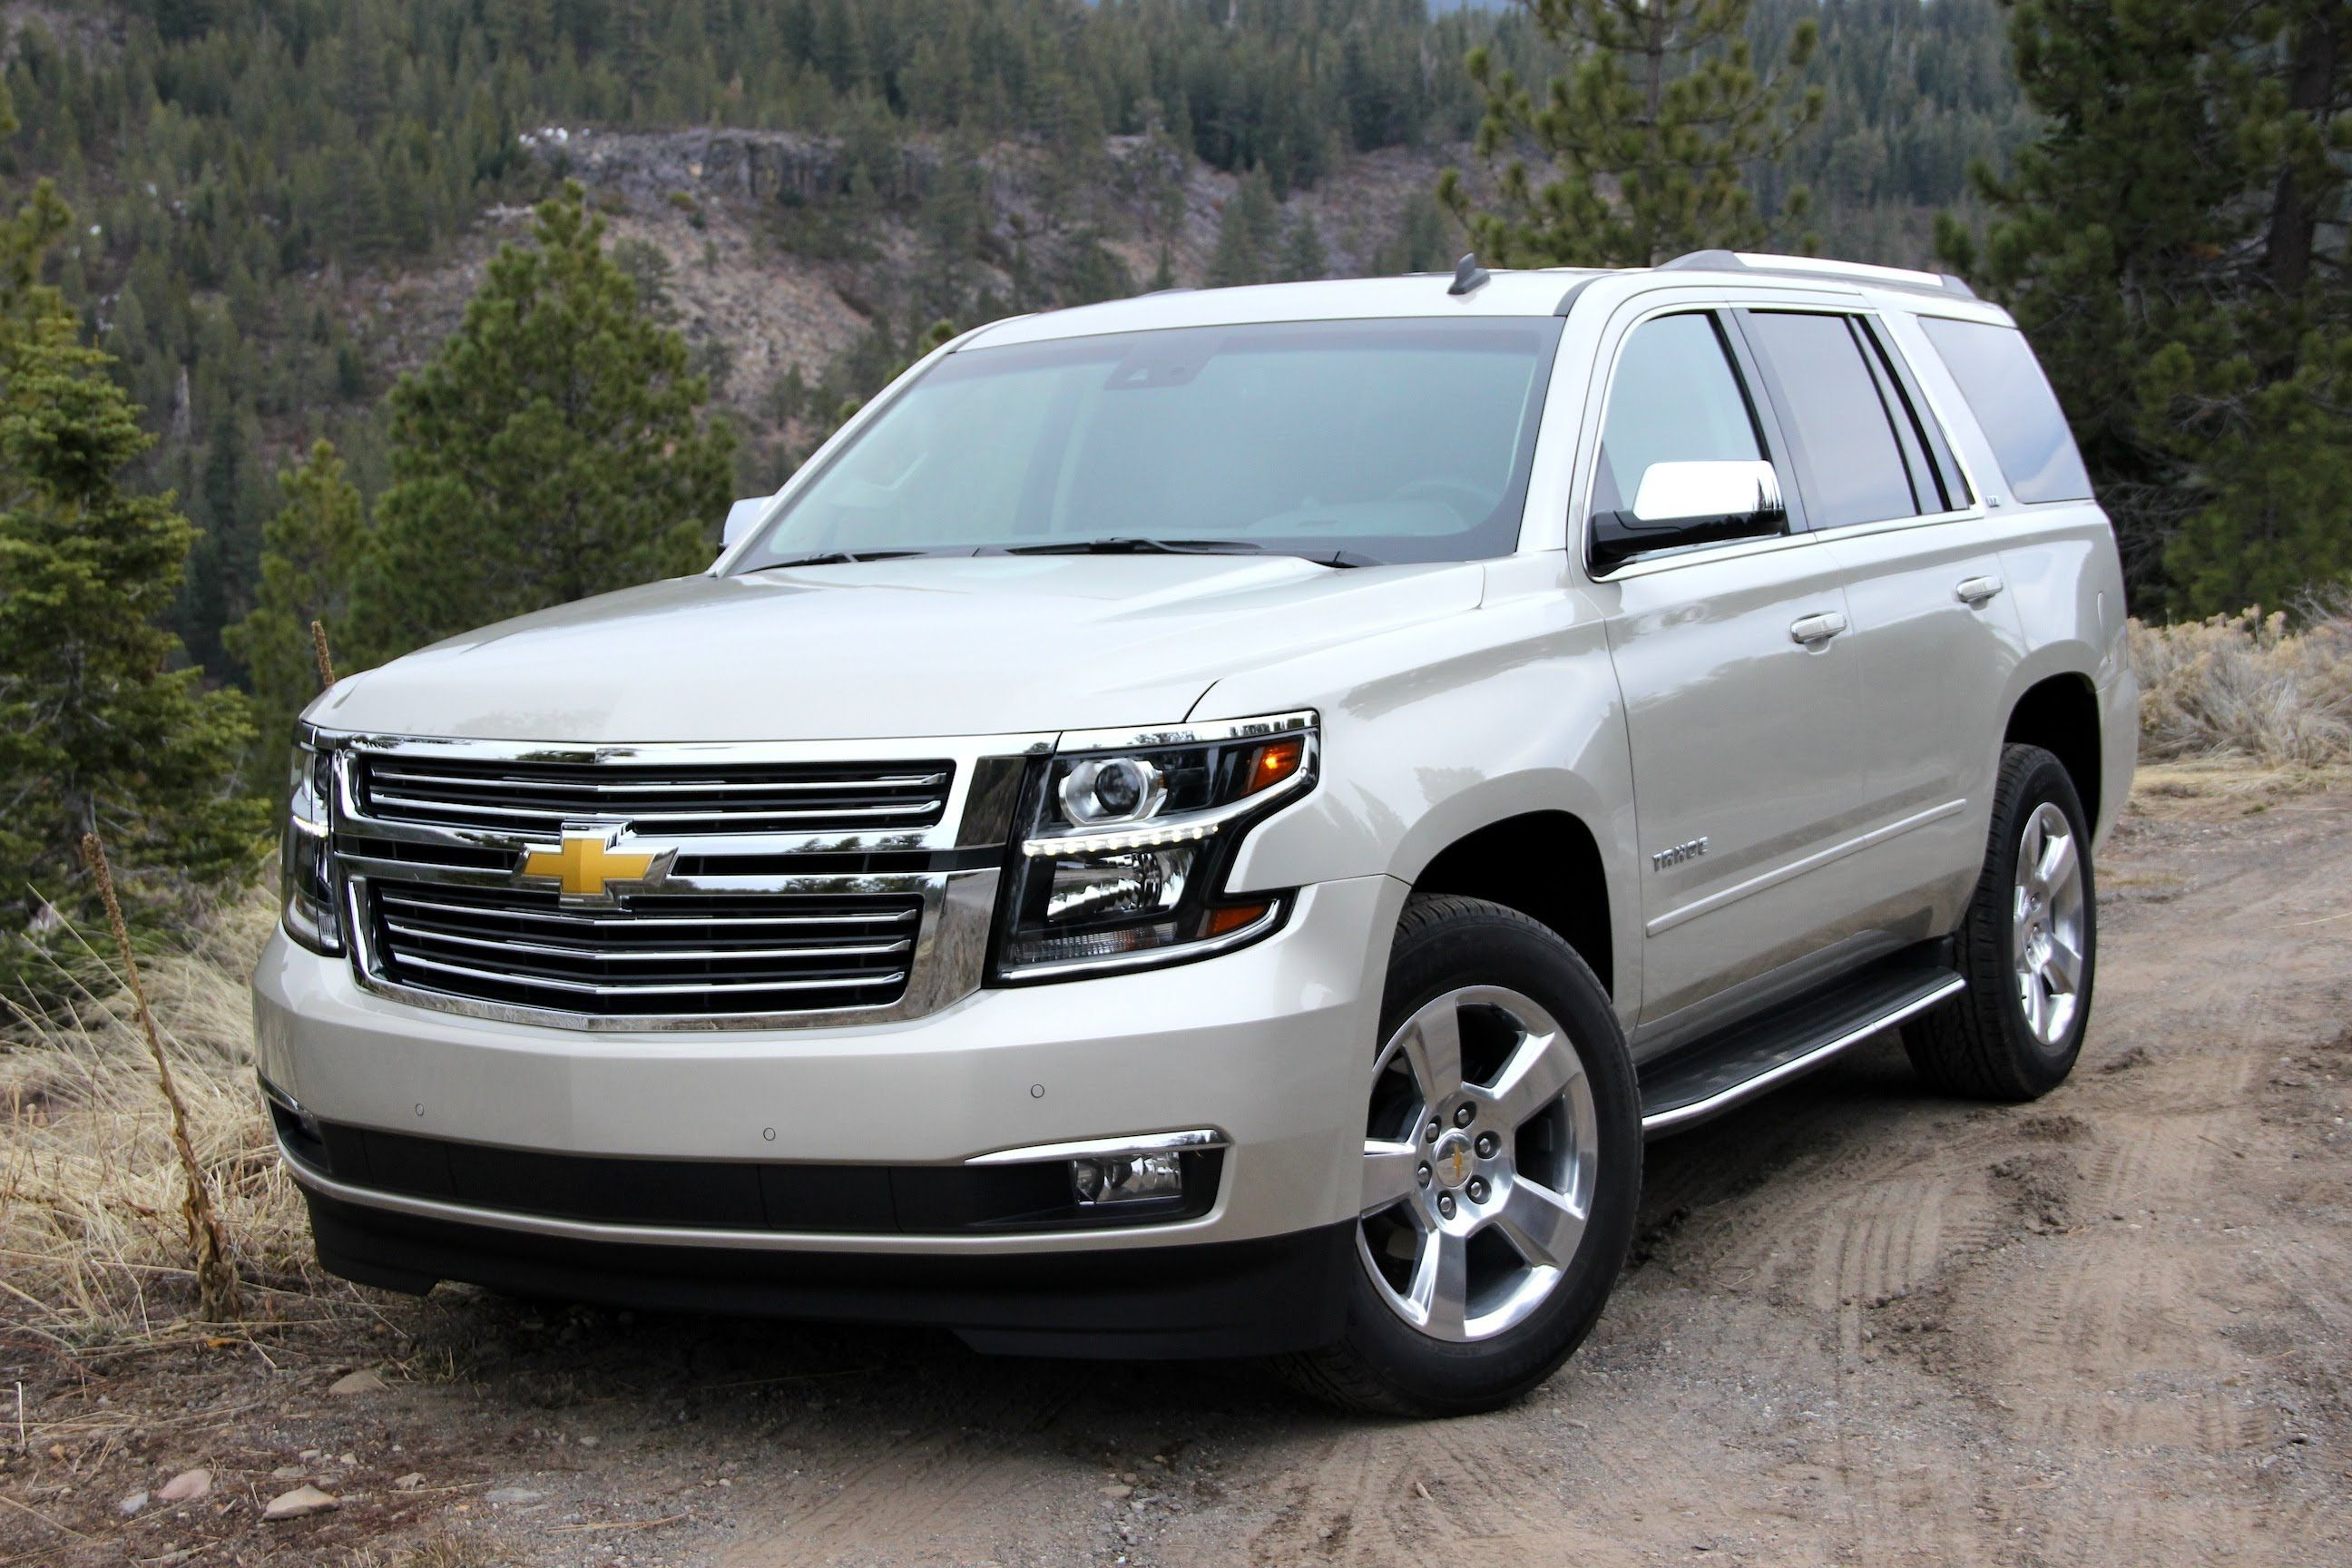 2015 Chevy Tahoe Gmc Yukon Denali Review 2014 Chevy Tahoe 2015